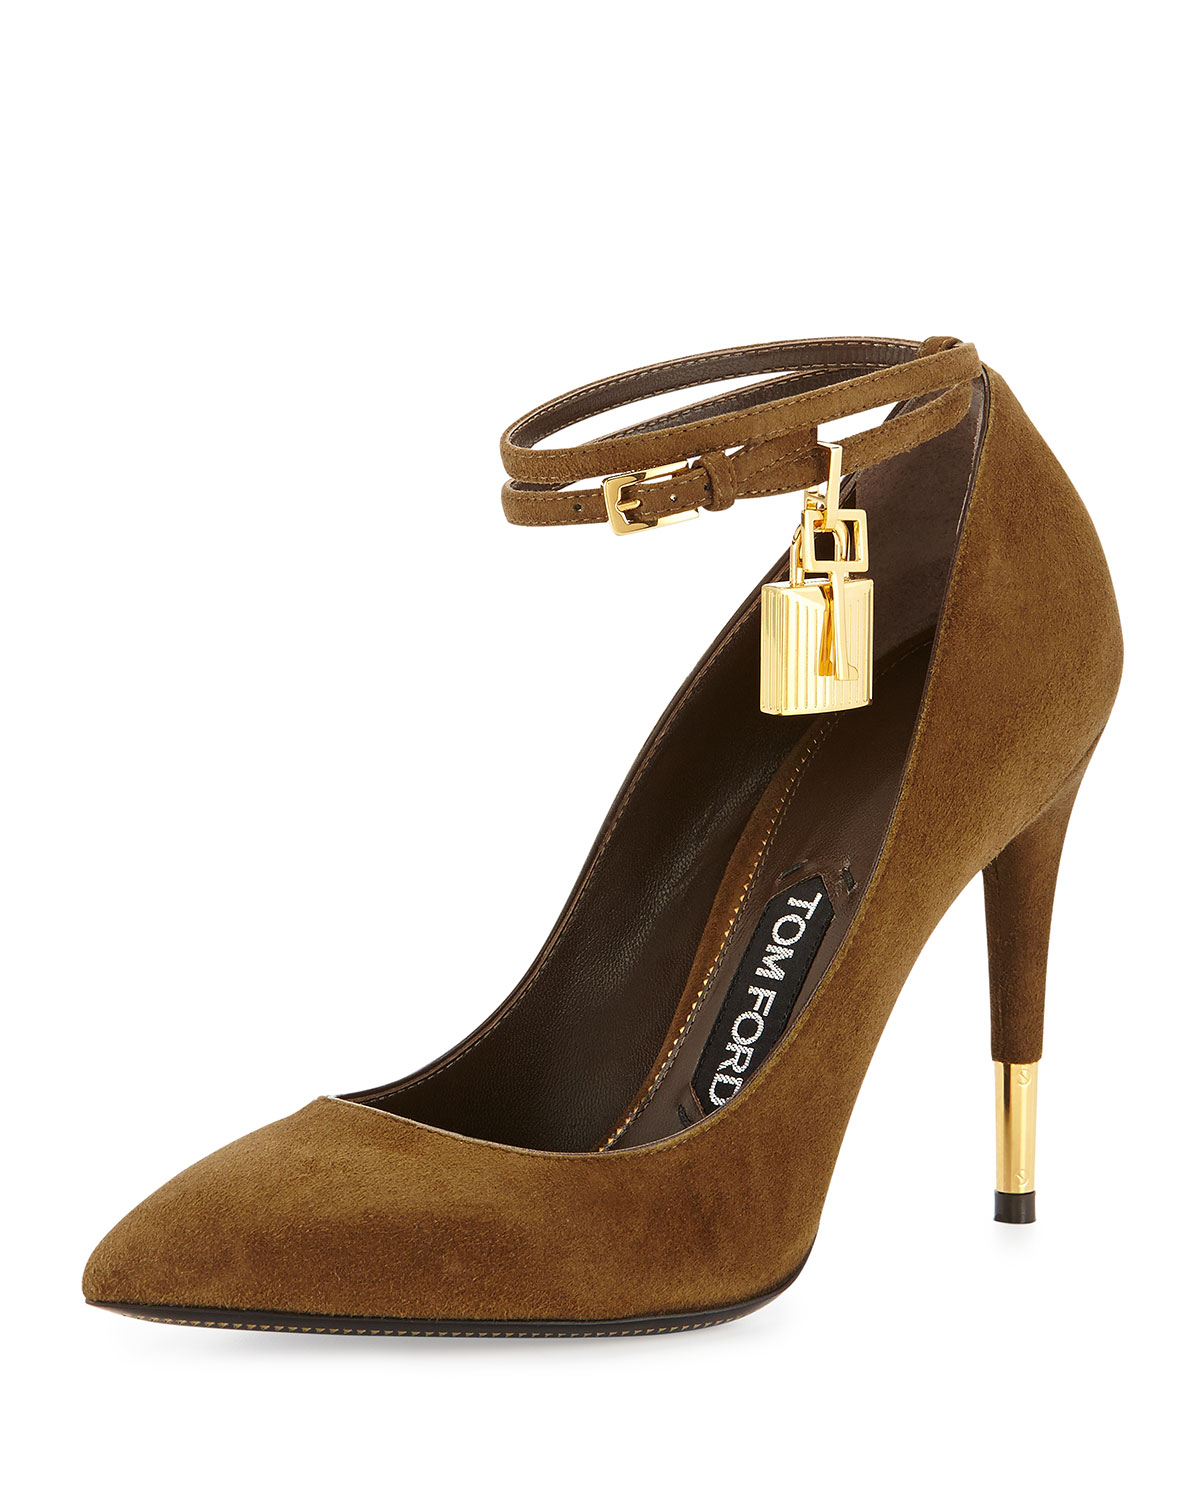 87021f17a54 TOM FORD Suede Padlock Ankle-Strap Pump